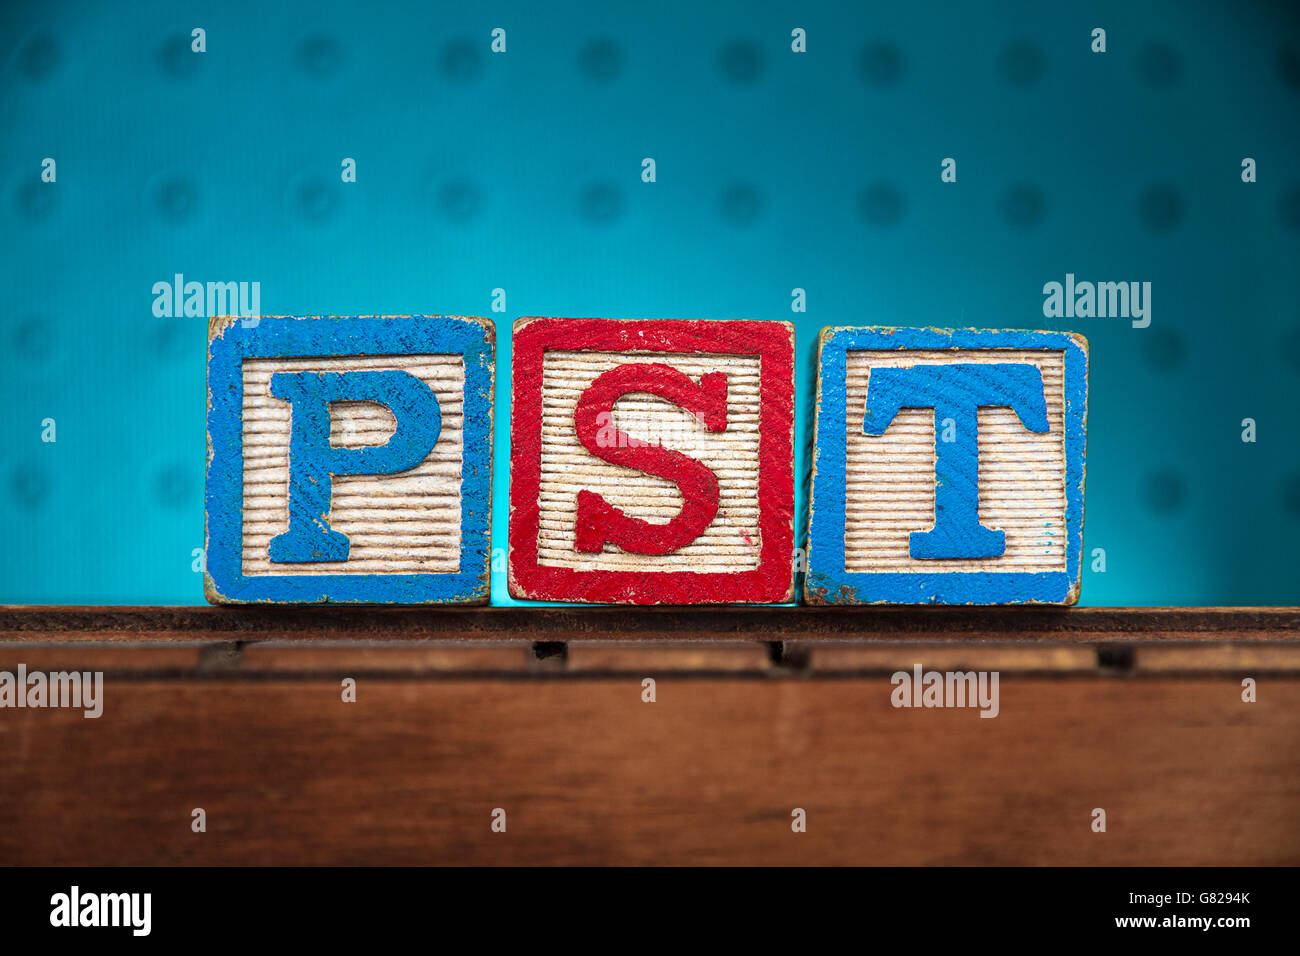 The word 'pst' spelled with letters on wooden toy blocks - Stock Image